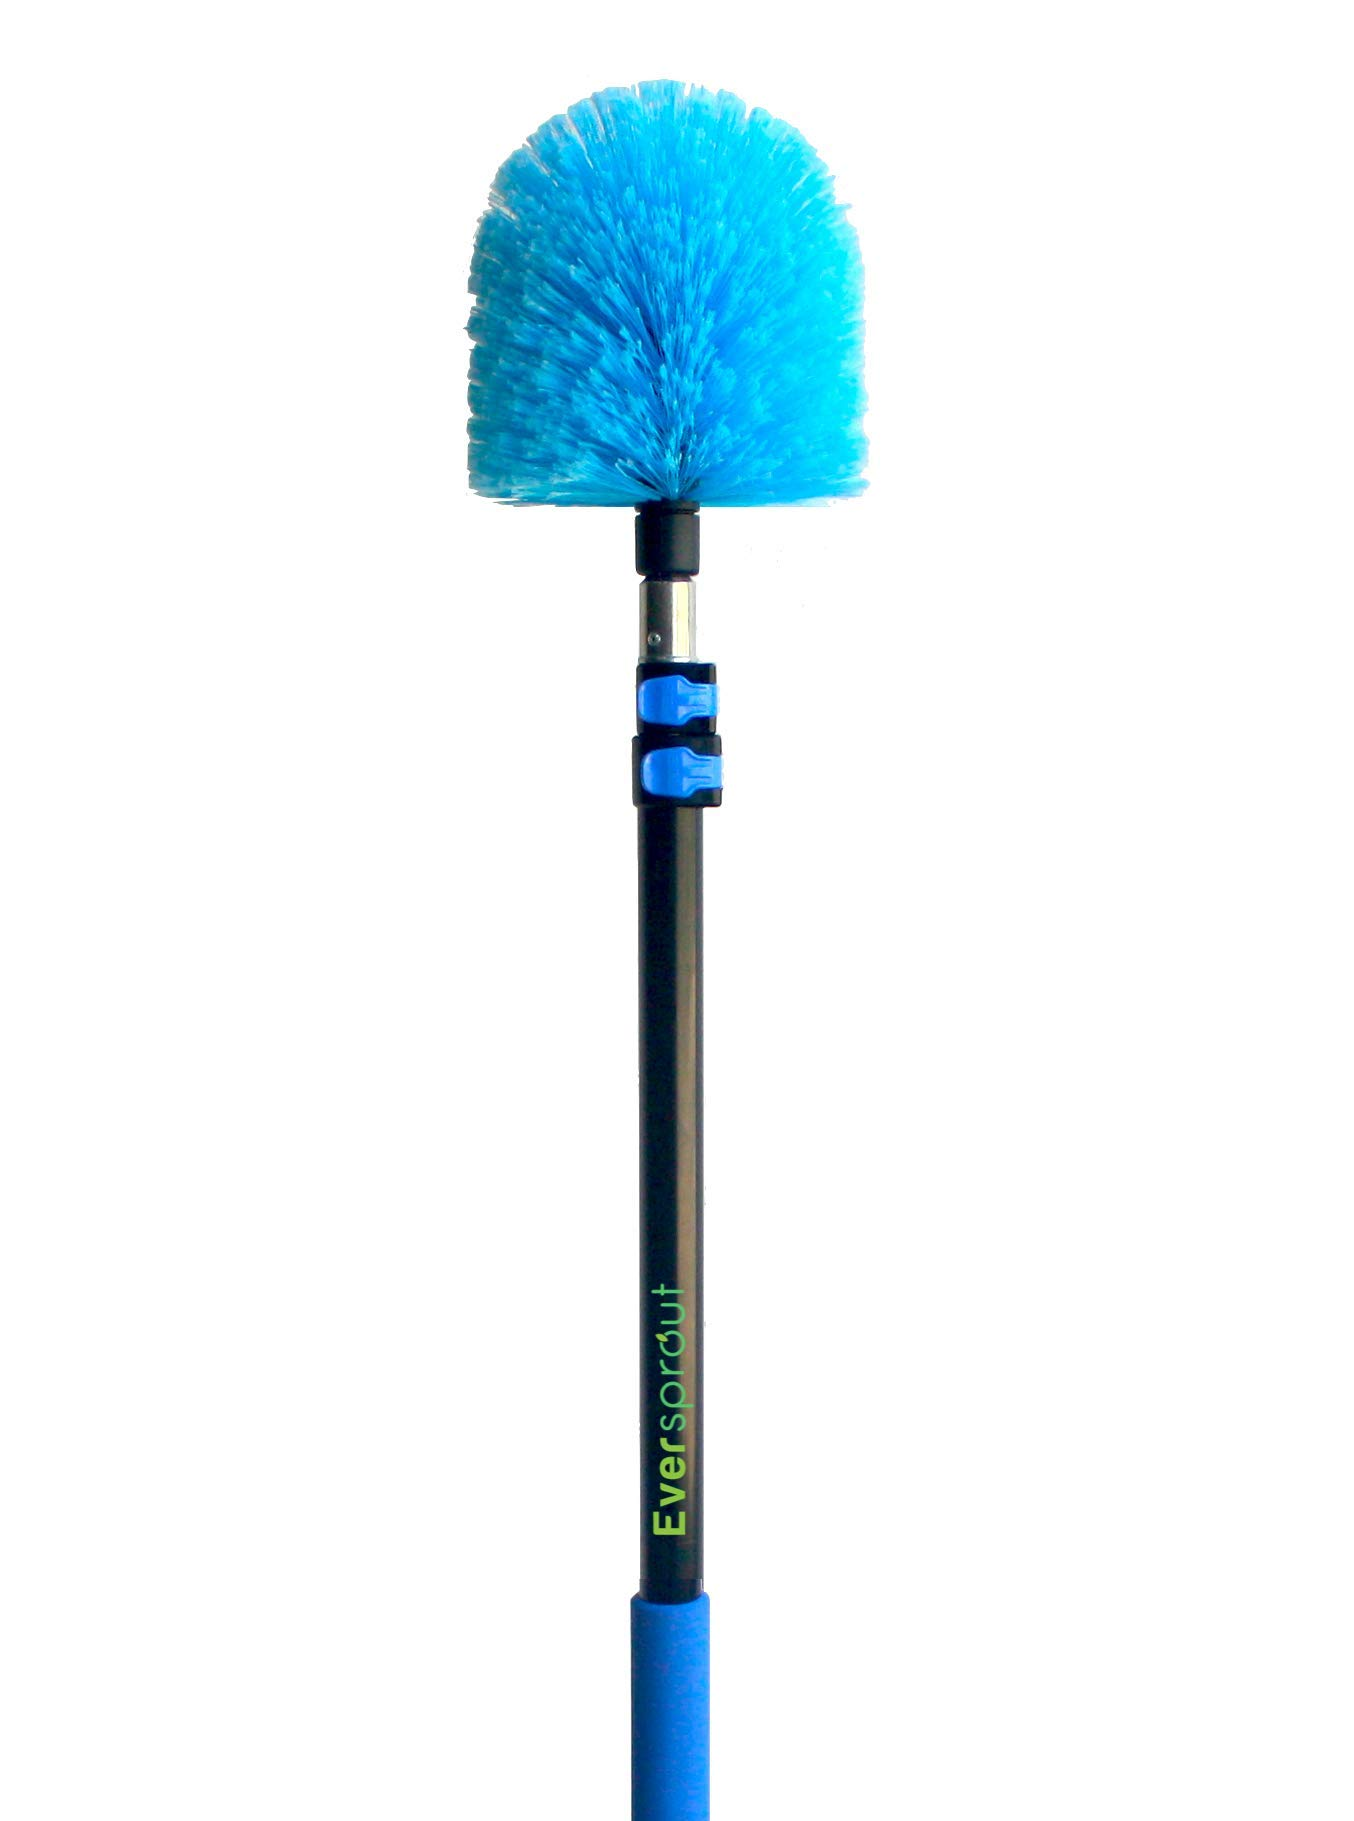 EVERSPROUT 7-to-19 Foot Cobweb Duster and Extension-Pole Combo (25 Foot Reach, Soft Bristles) | Hand Packaged | Lightweight, 3-Stage Aluminum Pole | Indoor & Outdoor Use Brush Attachment by EVERSPROUT